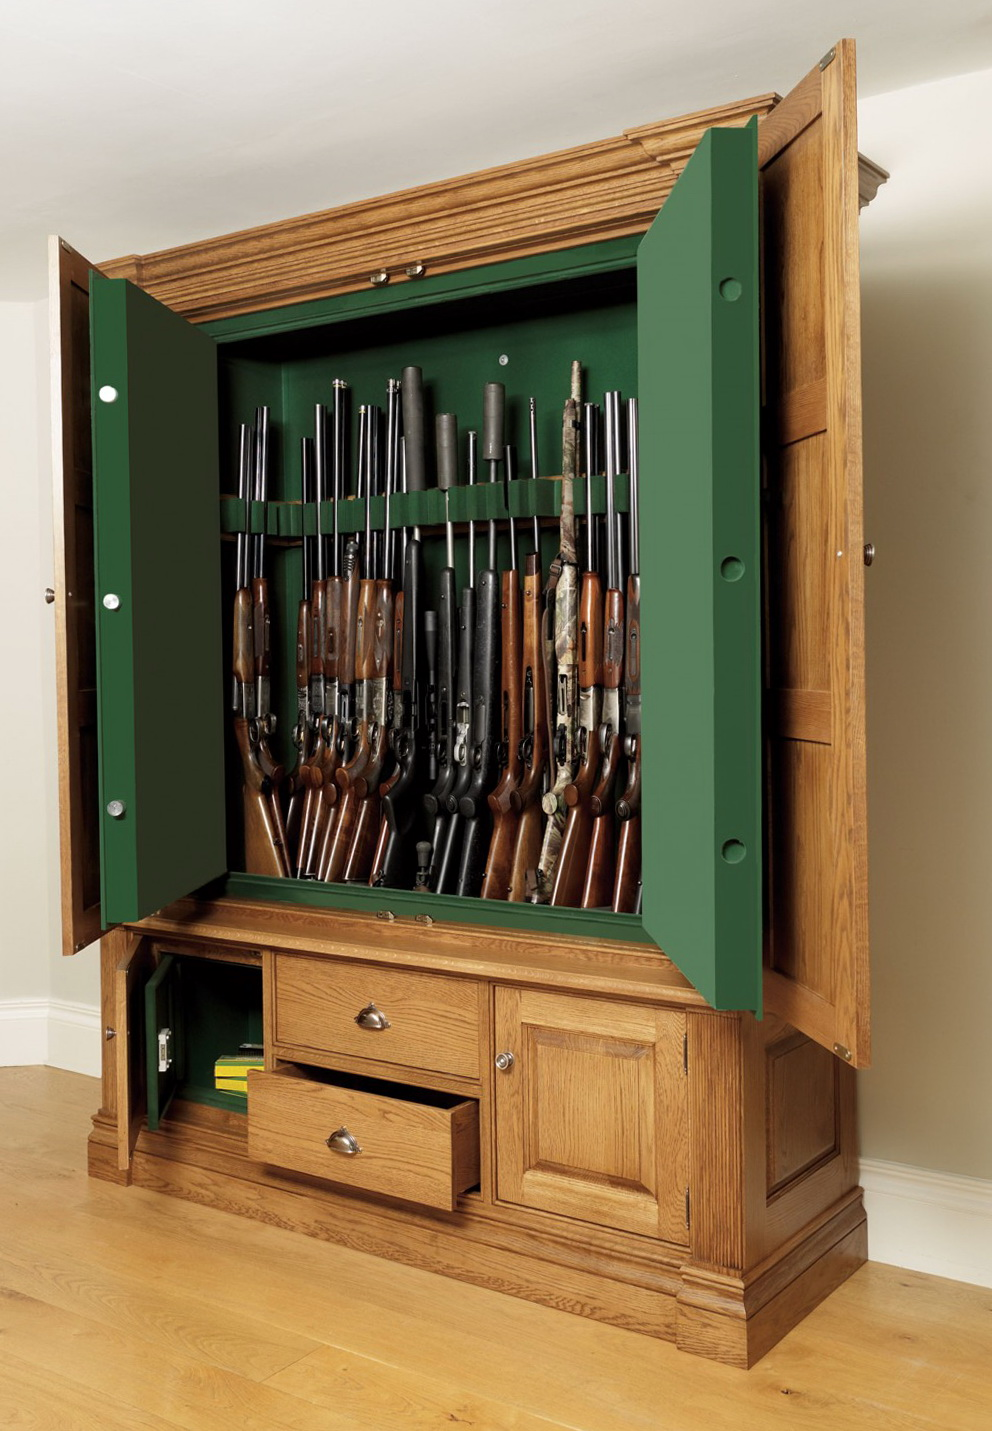 Wooden Gun Cabinet With Deer Etching